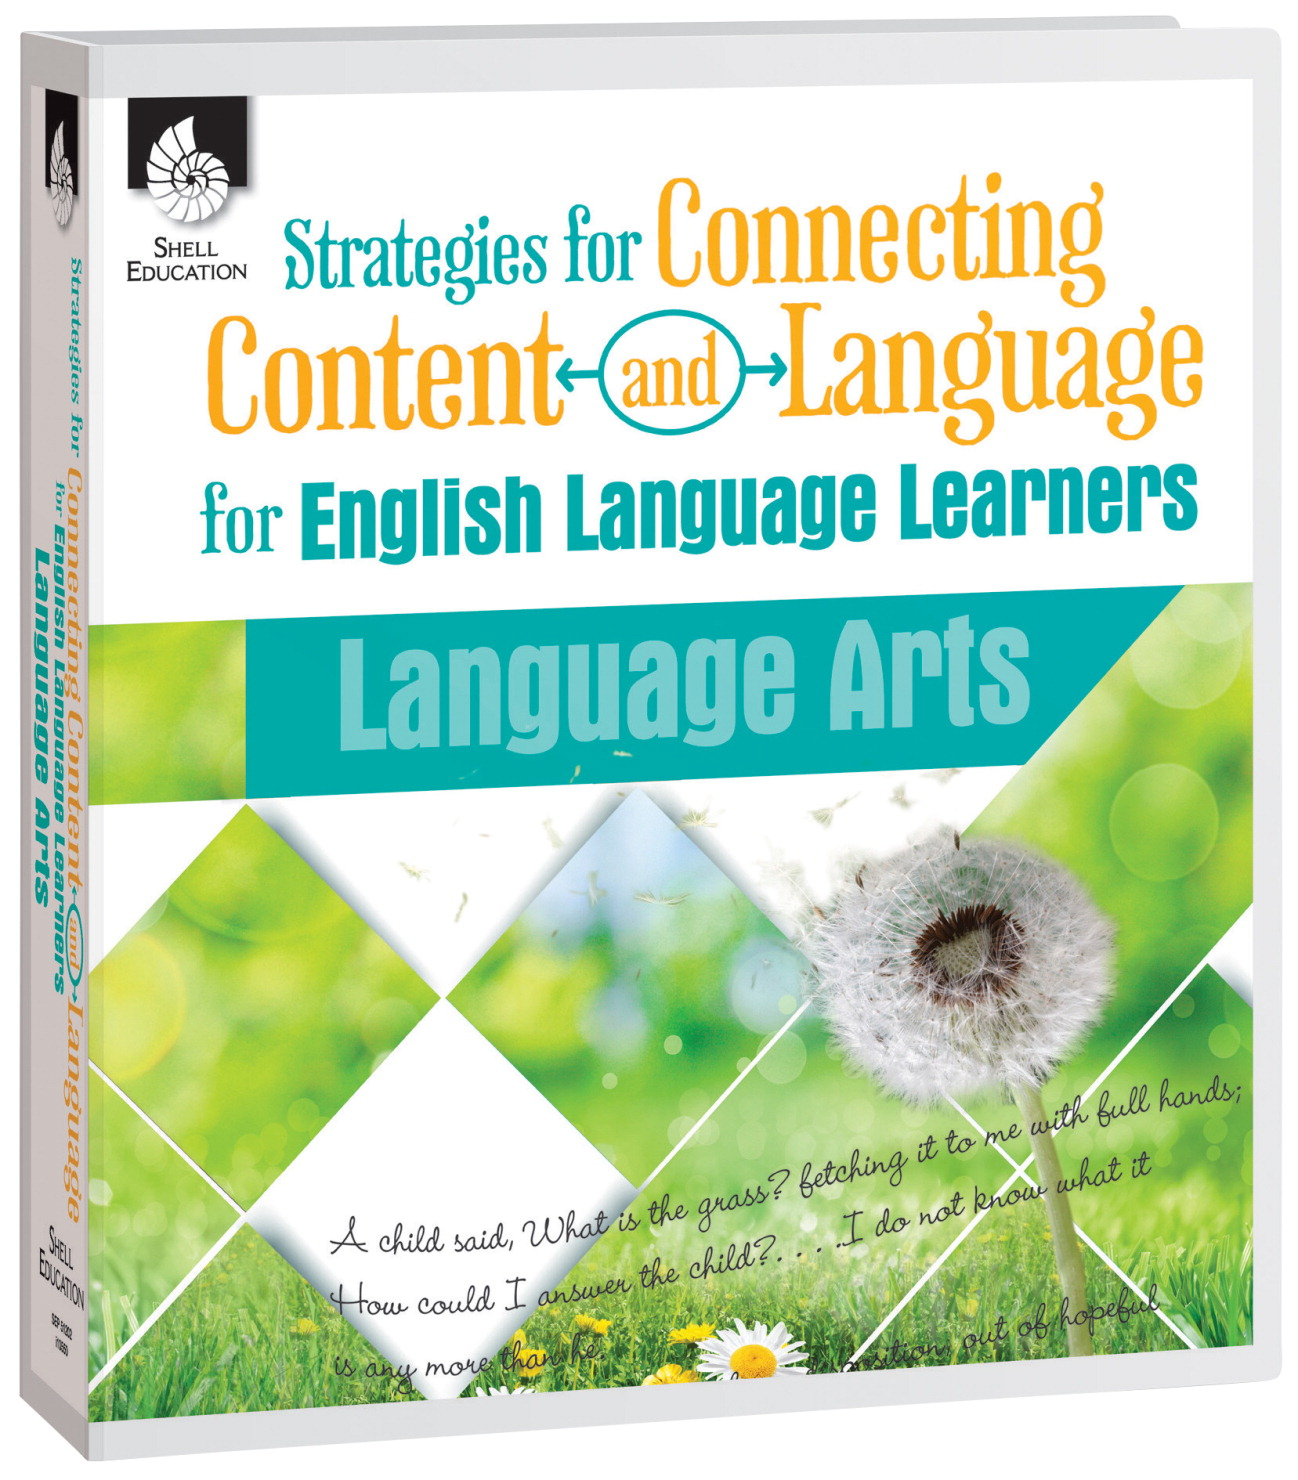 Shell Education Strategies for Connecting Content and Language for ELL in Language Arts Book